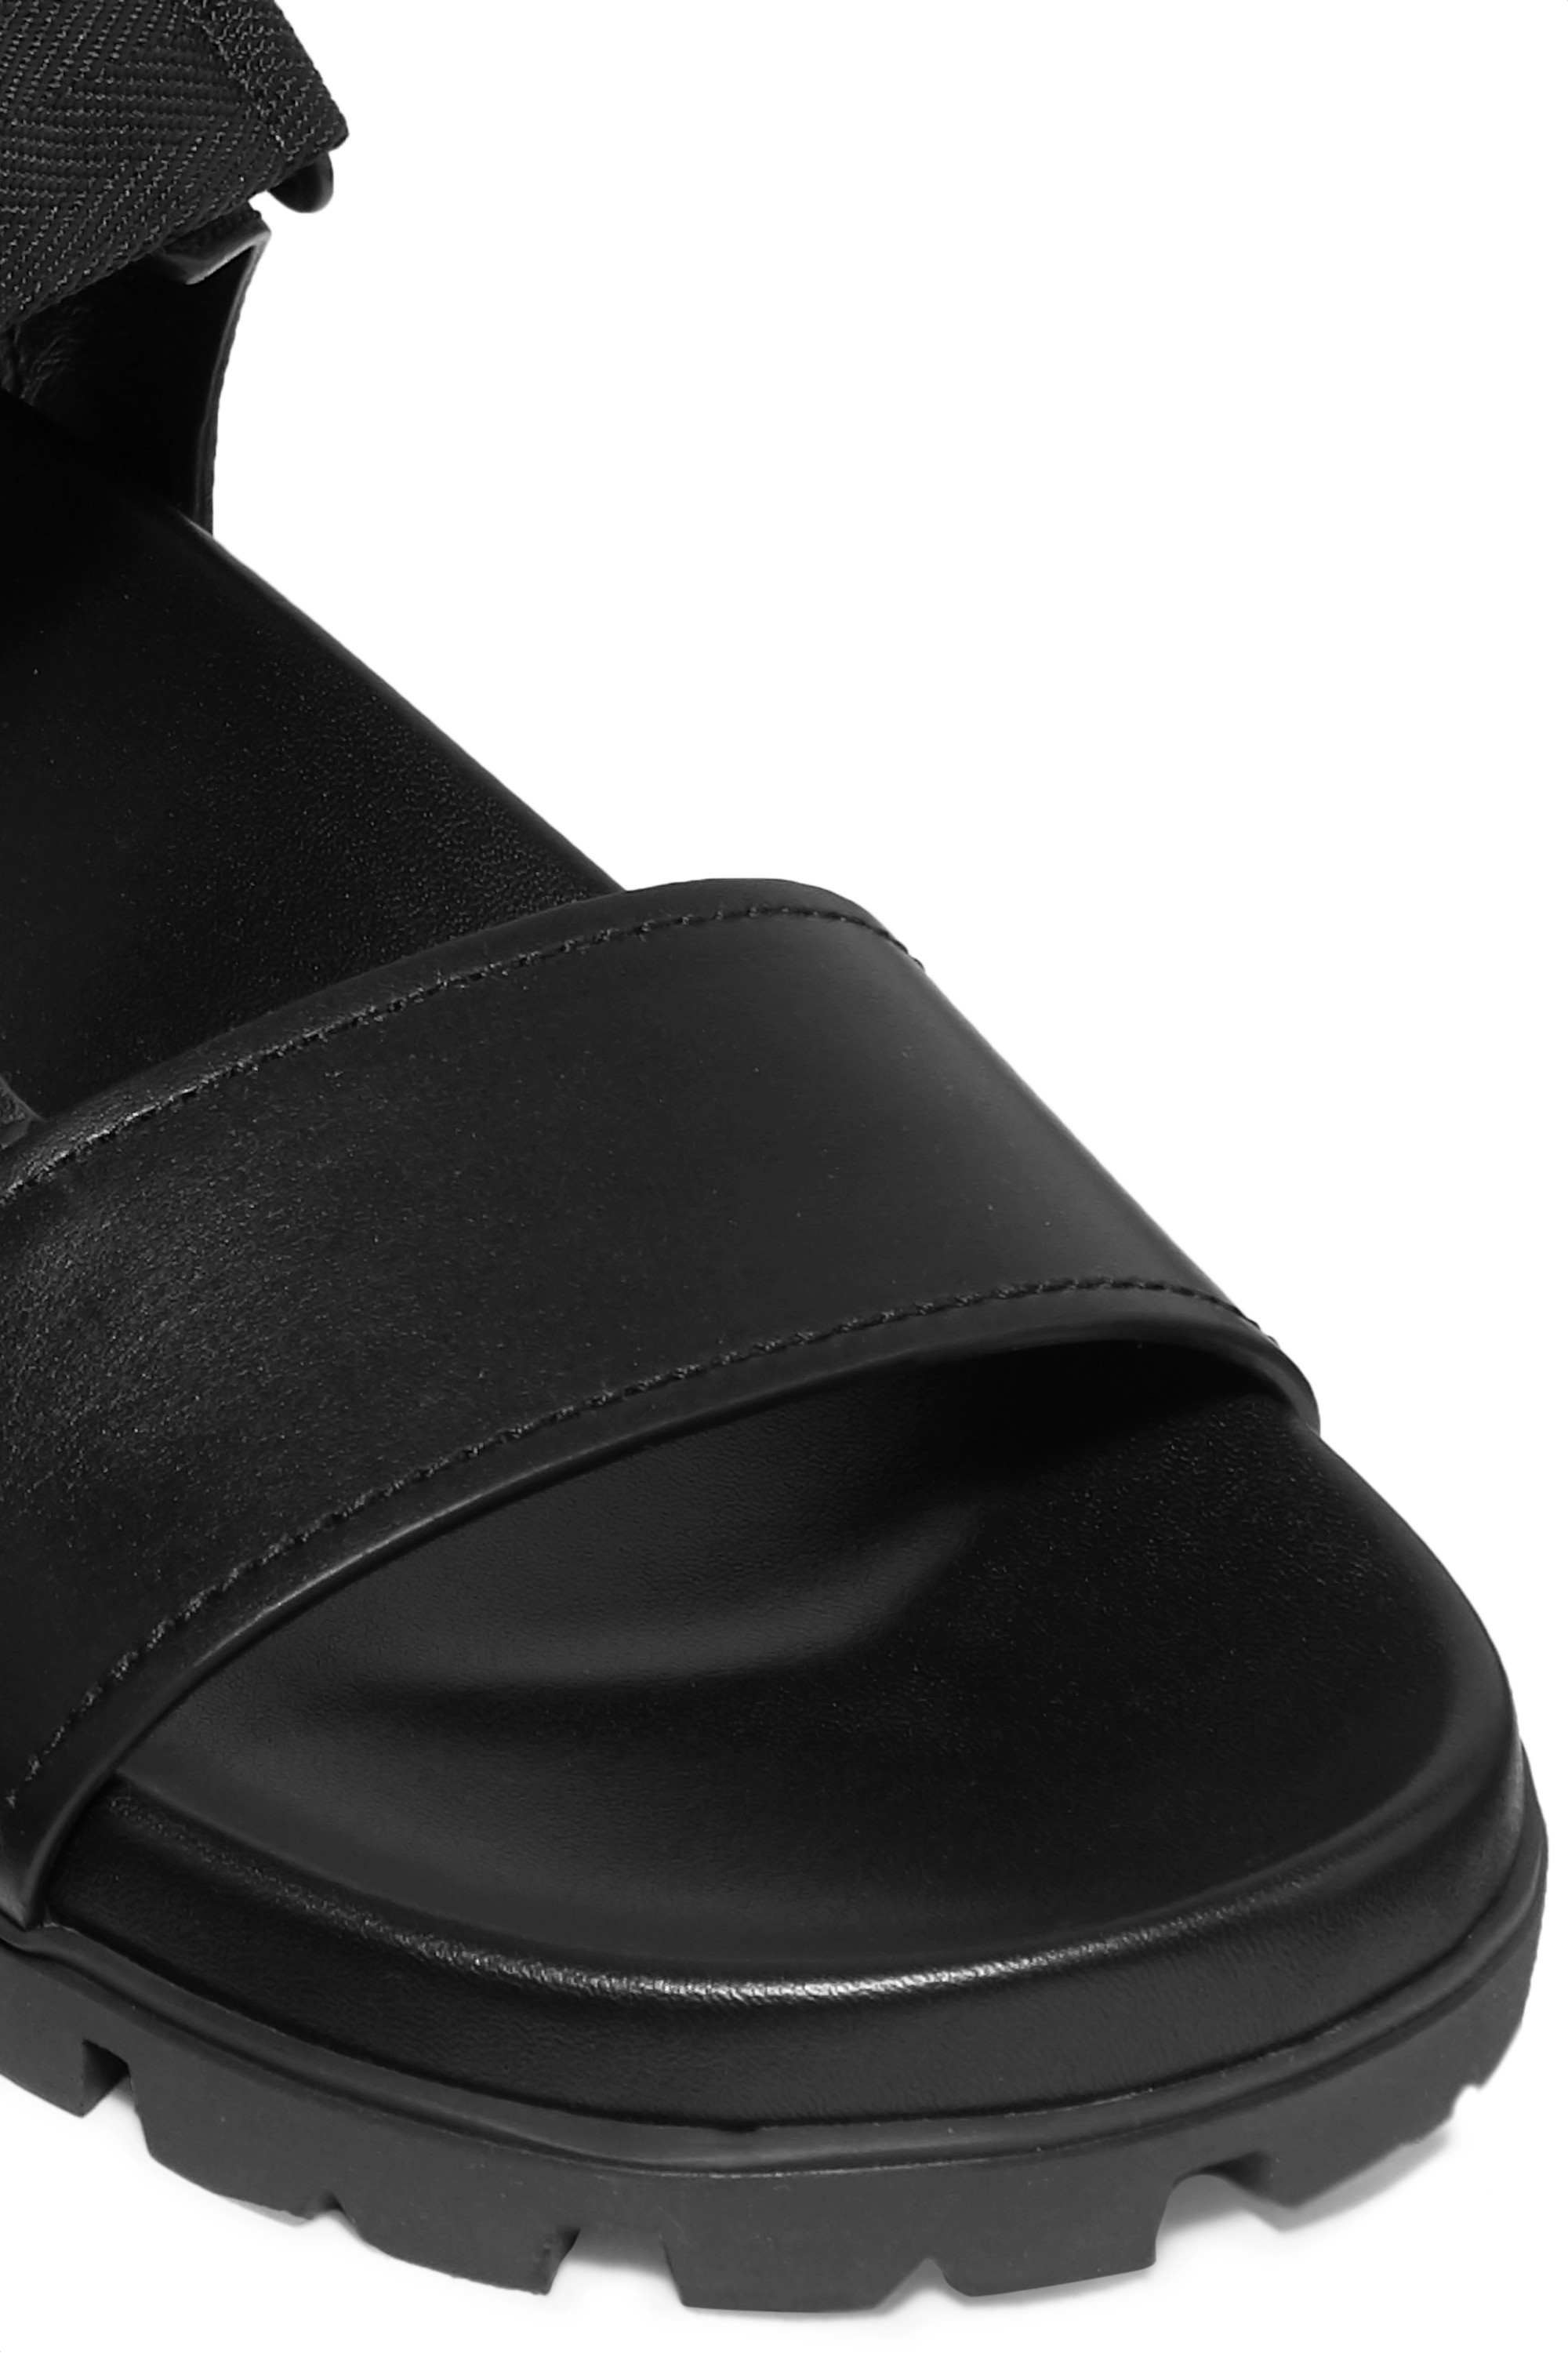 Prada Buckle-detailed leather sandals